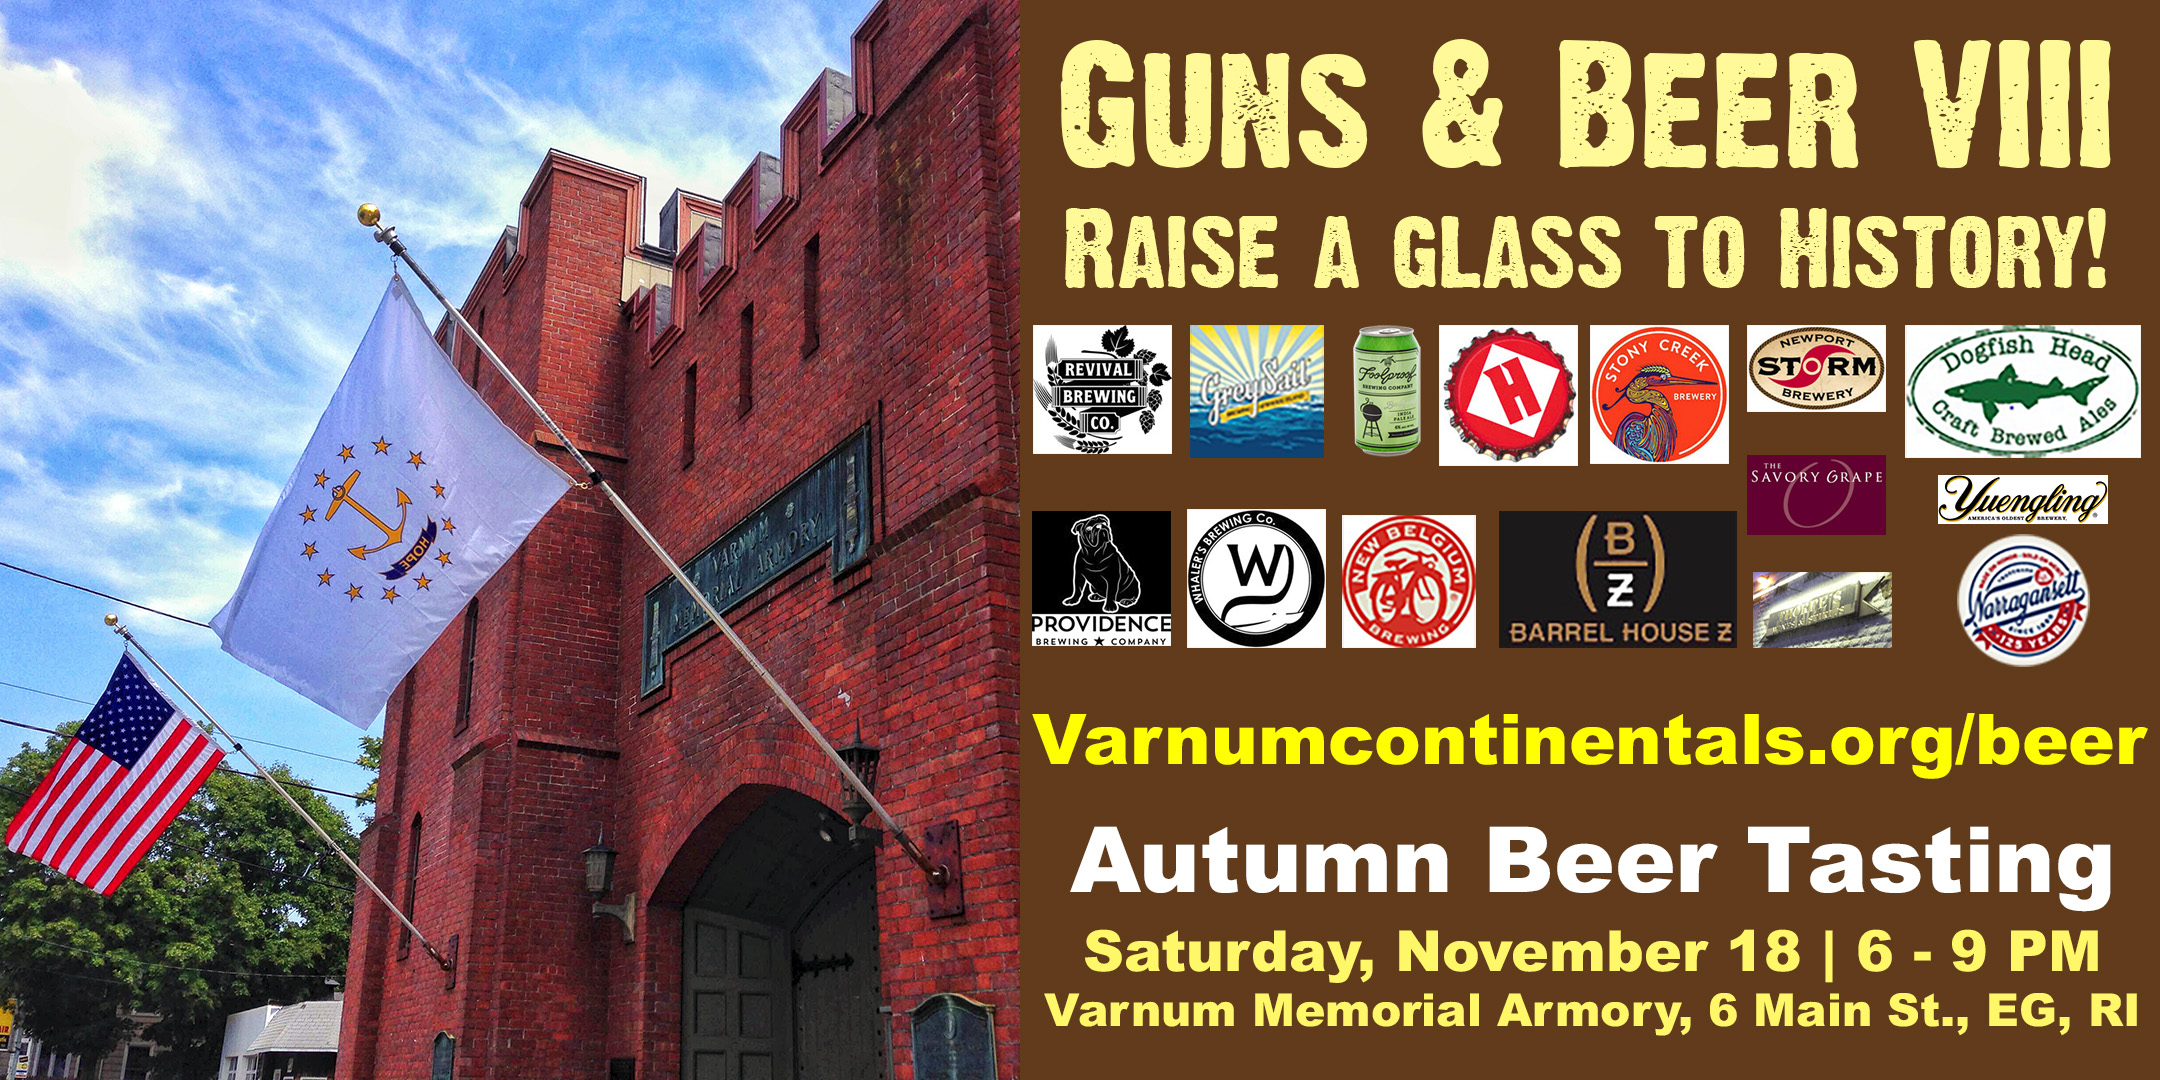 Guns & Beer VIII: Raise a Glass to History